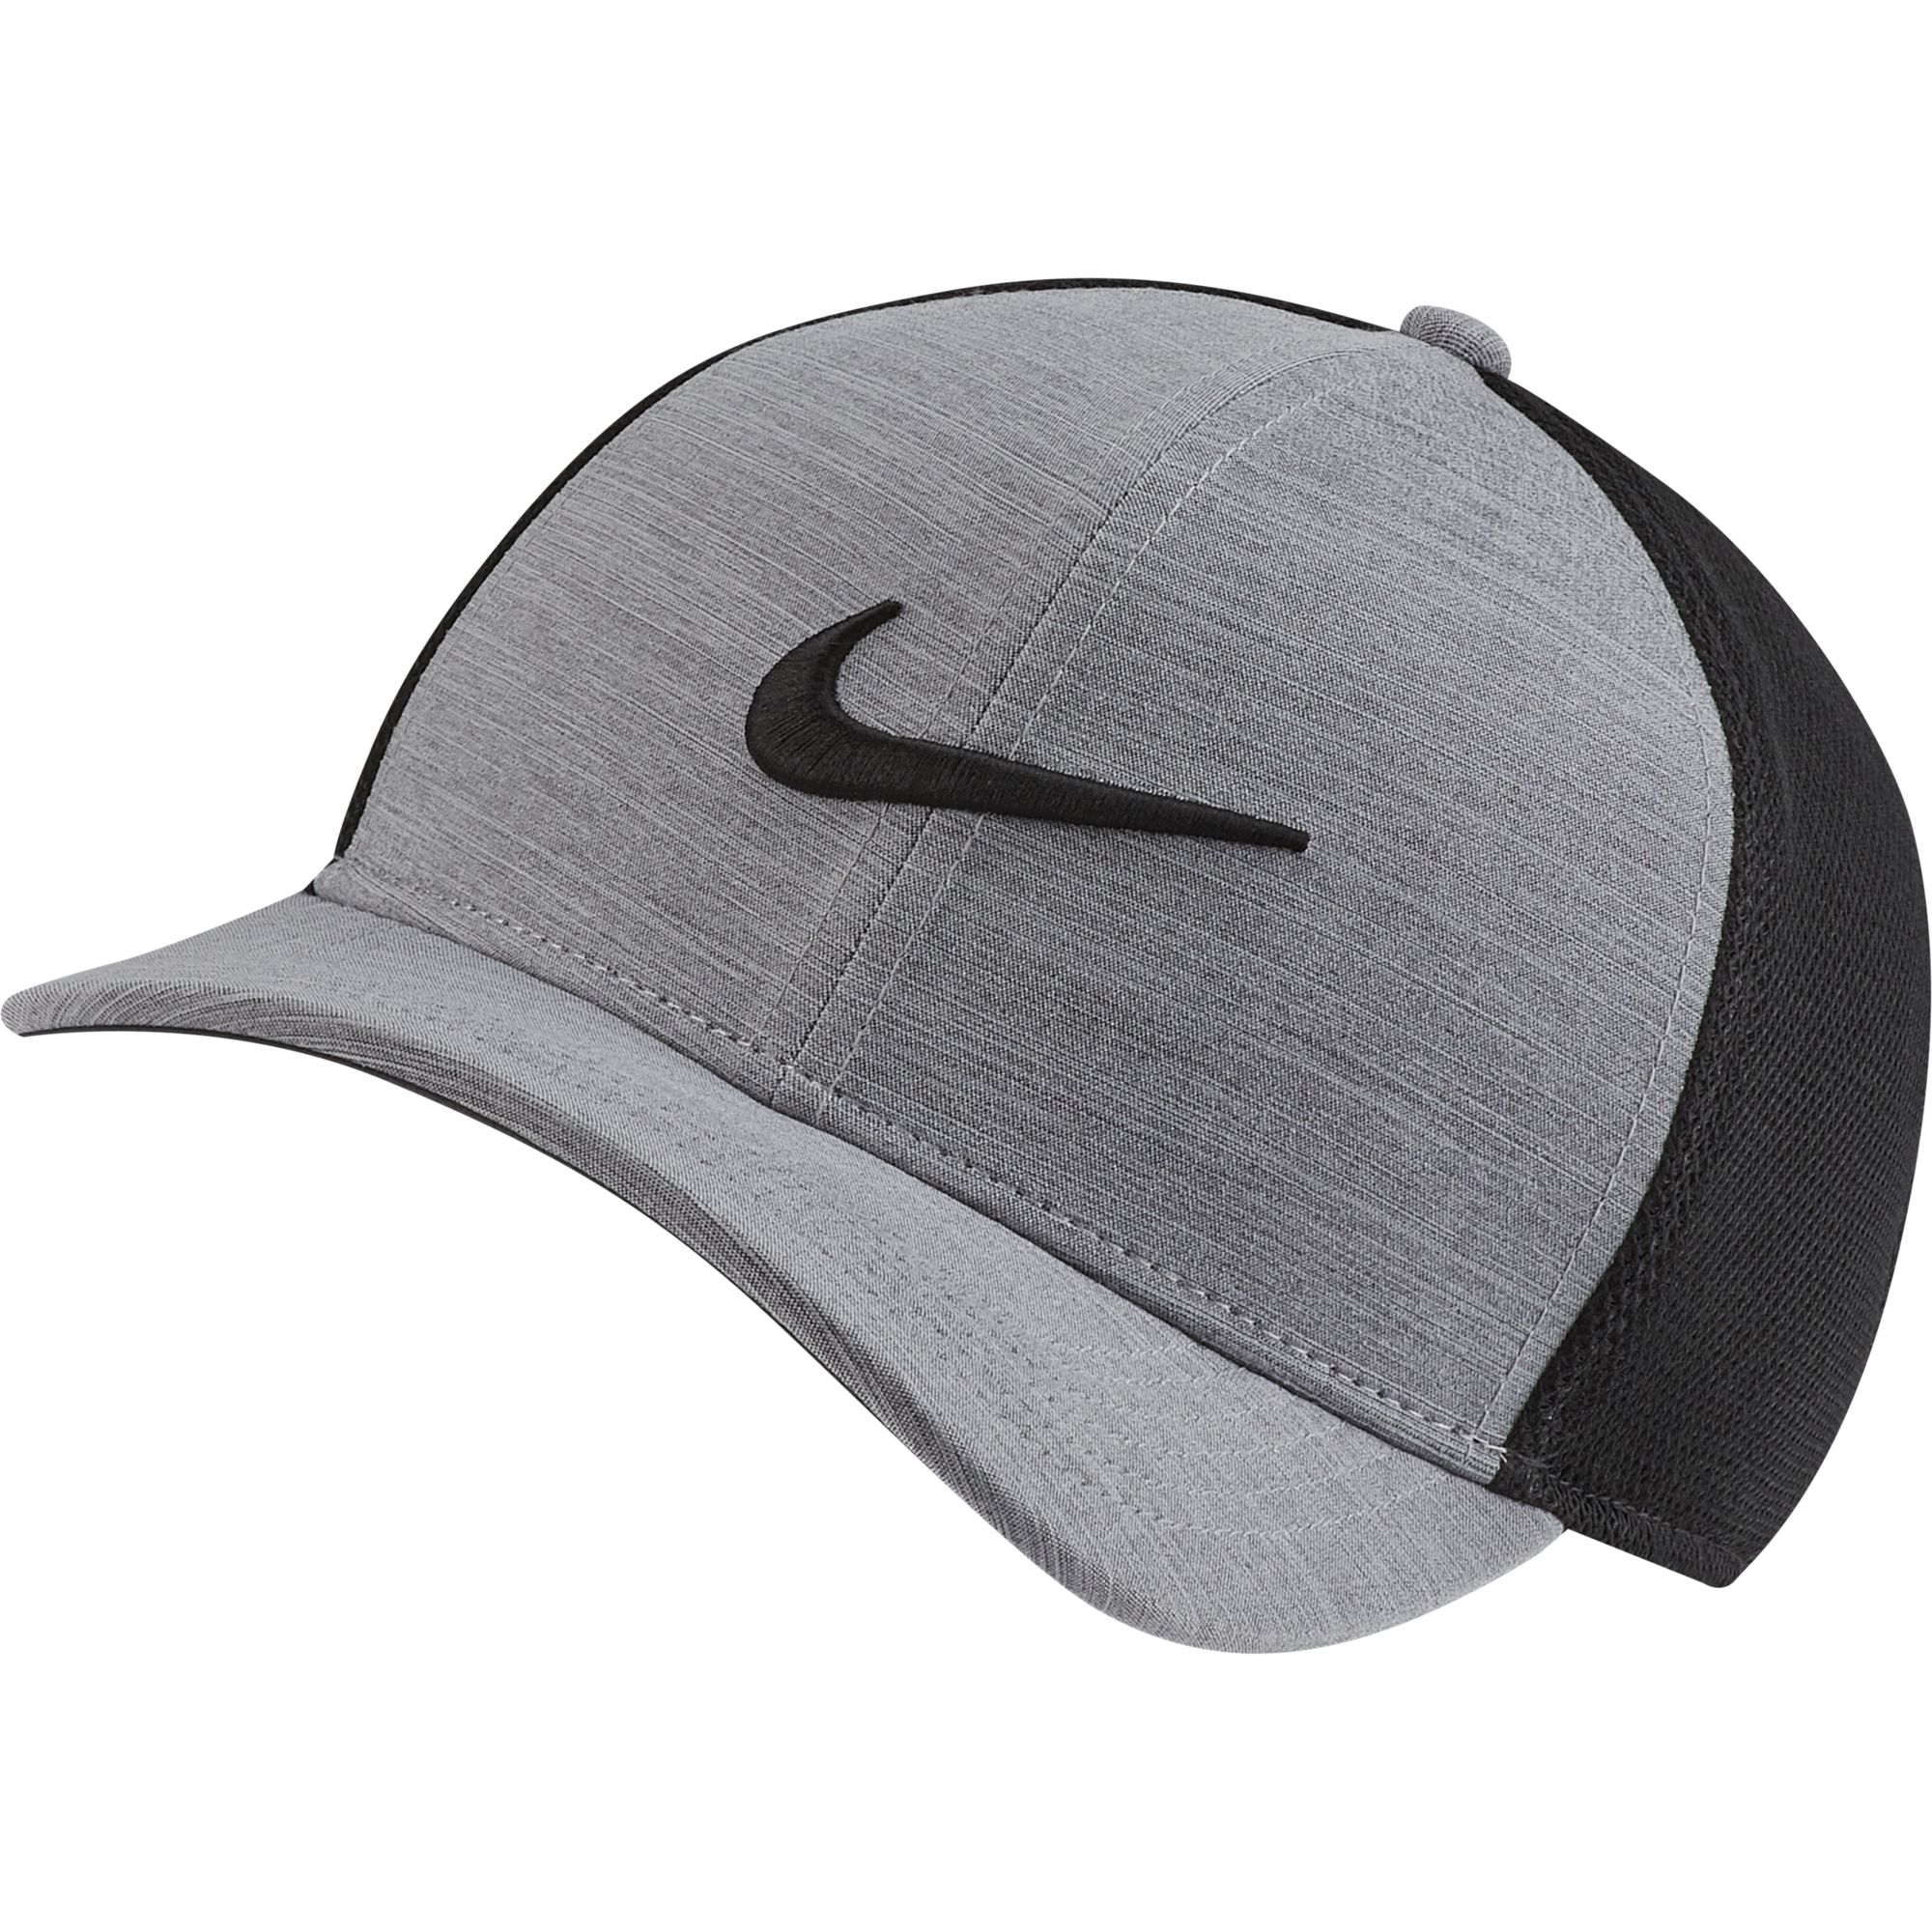 AeroBill Classic99 Mesh Golf Hat, Charcoal/Black, large